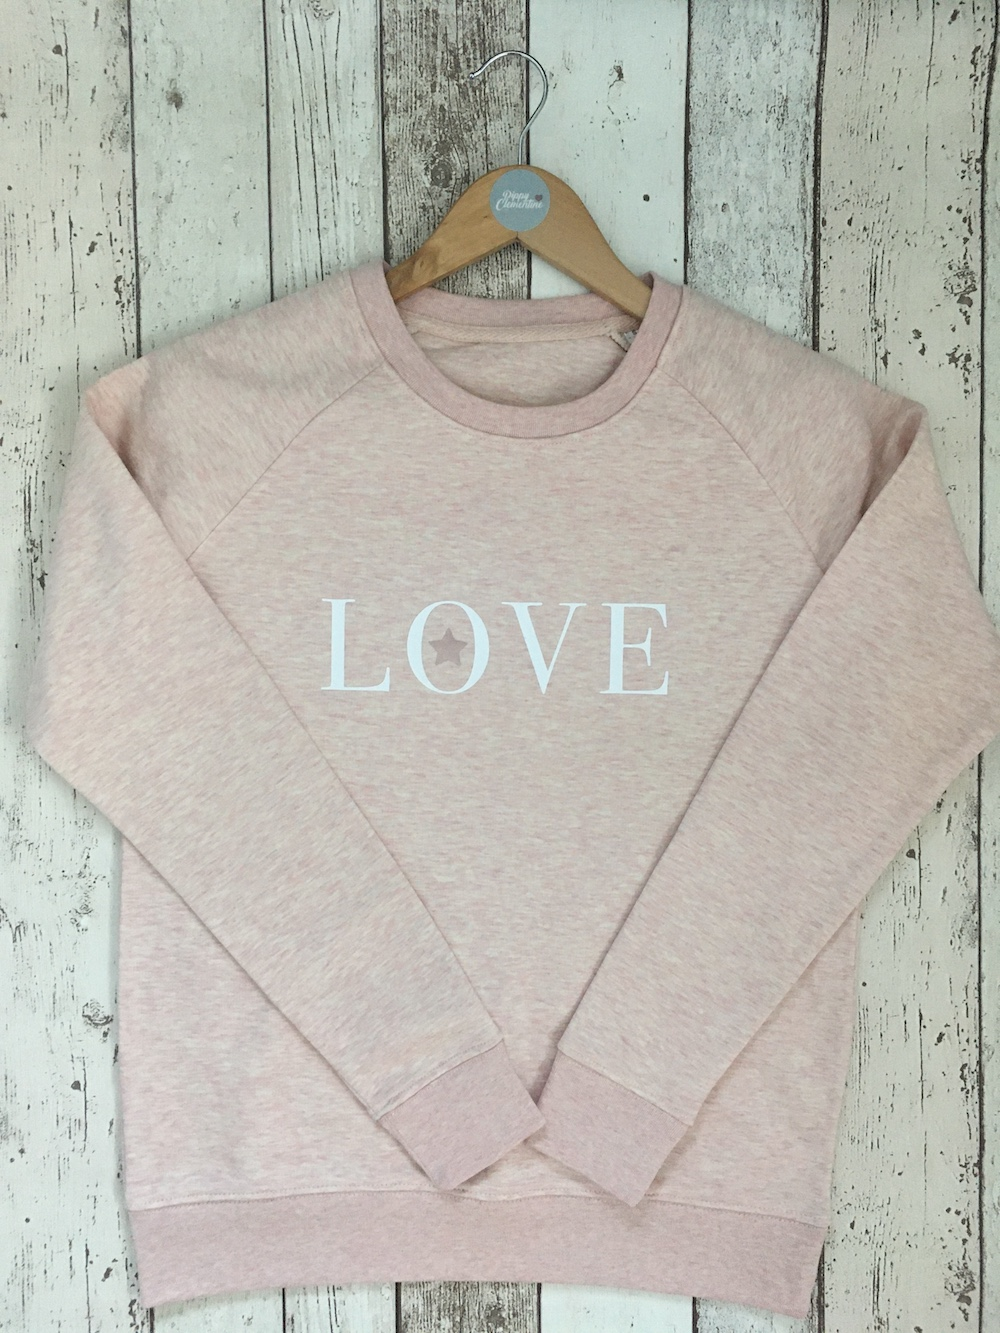 Love Star Super Soft Sweatshirt -Heather Pink